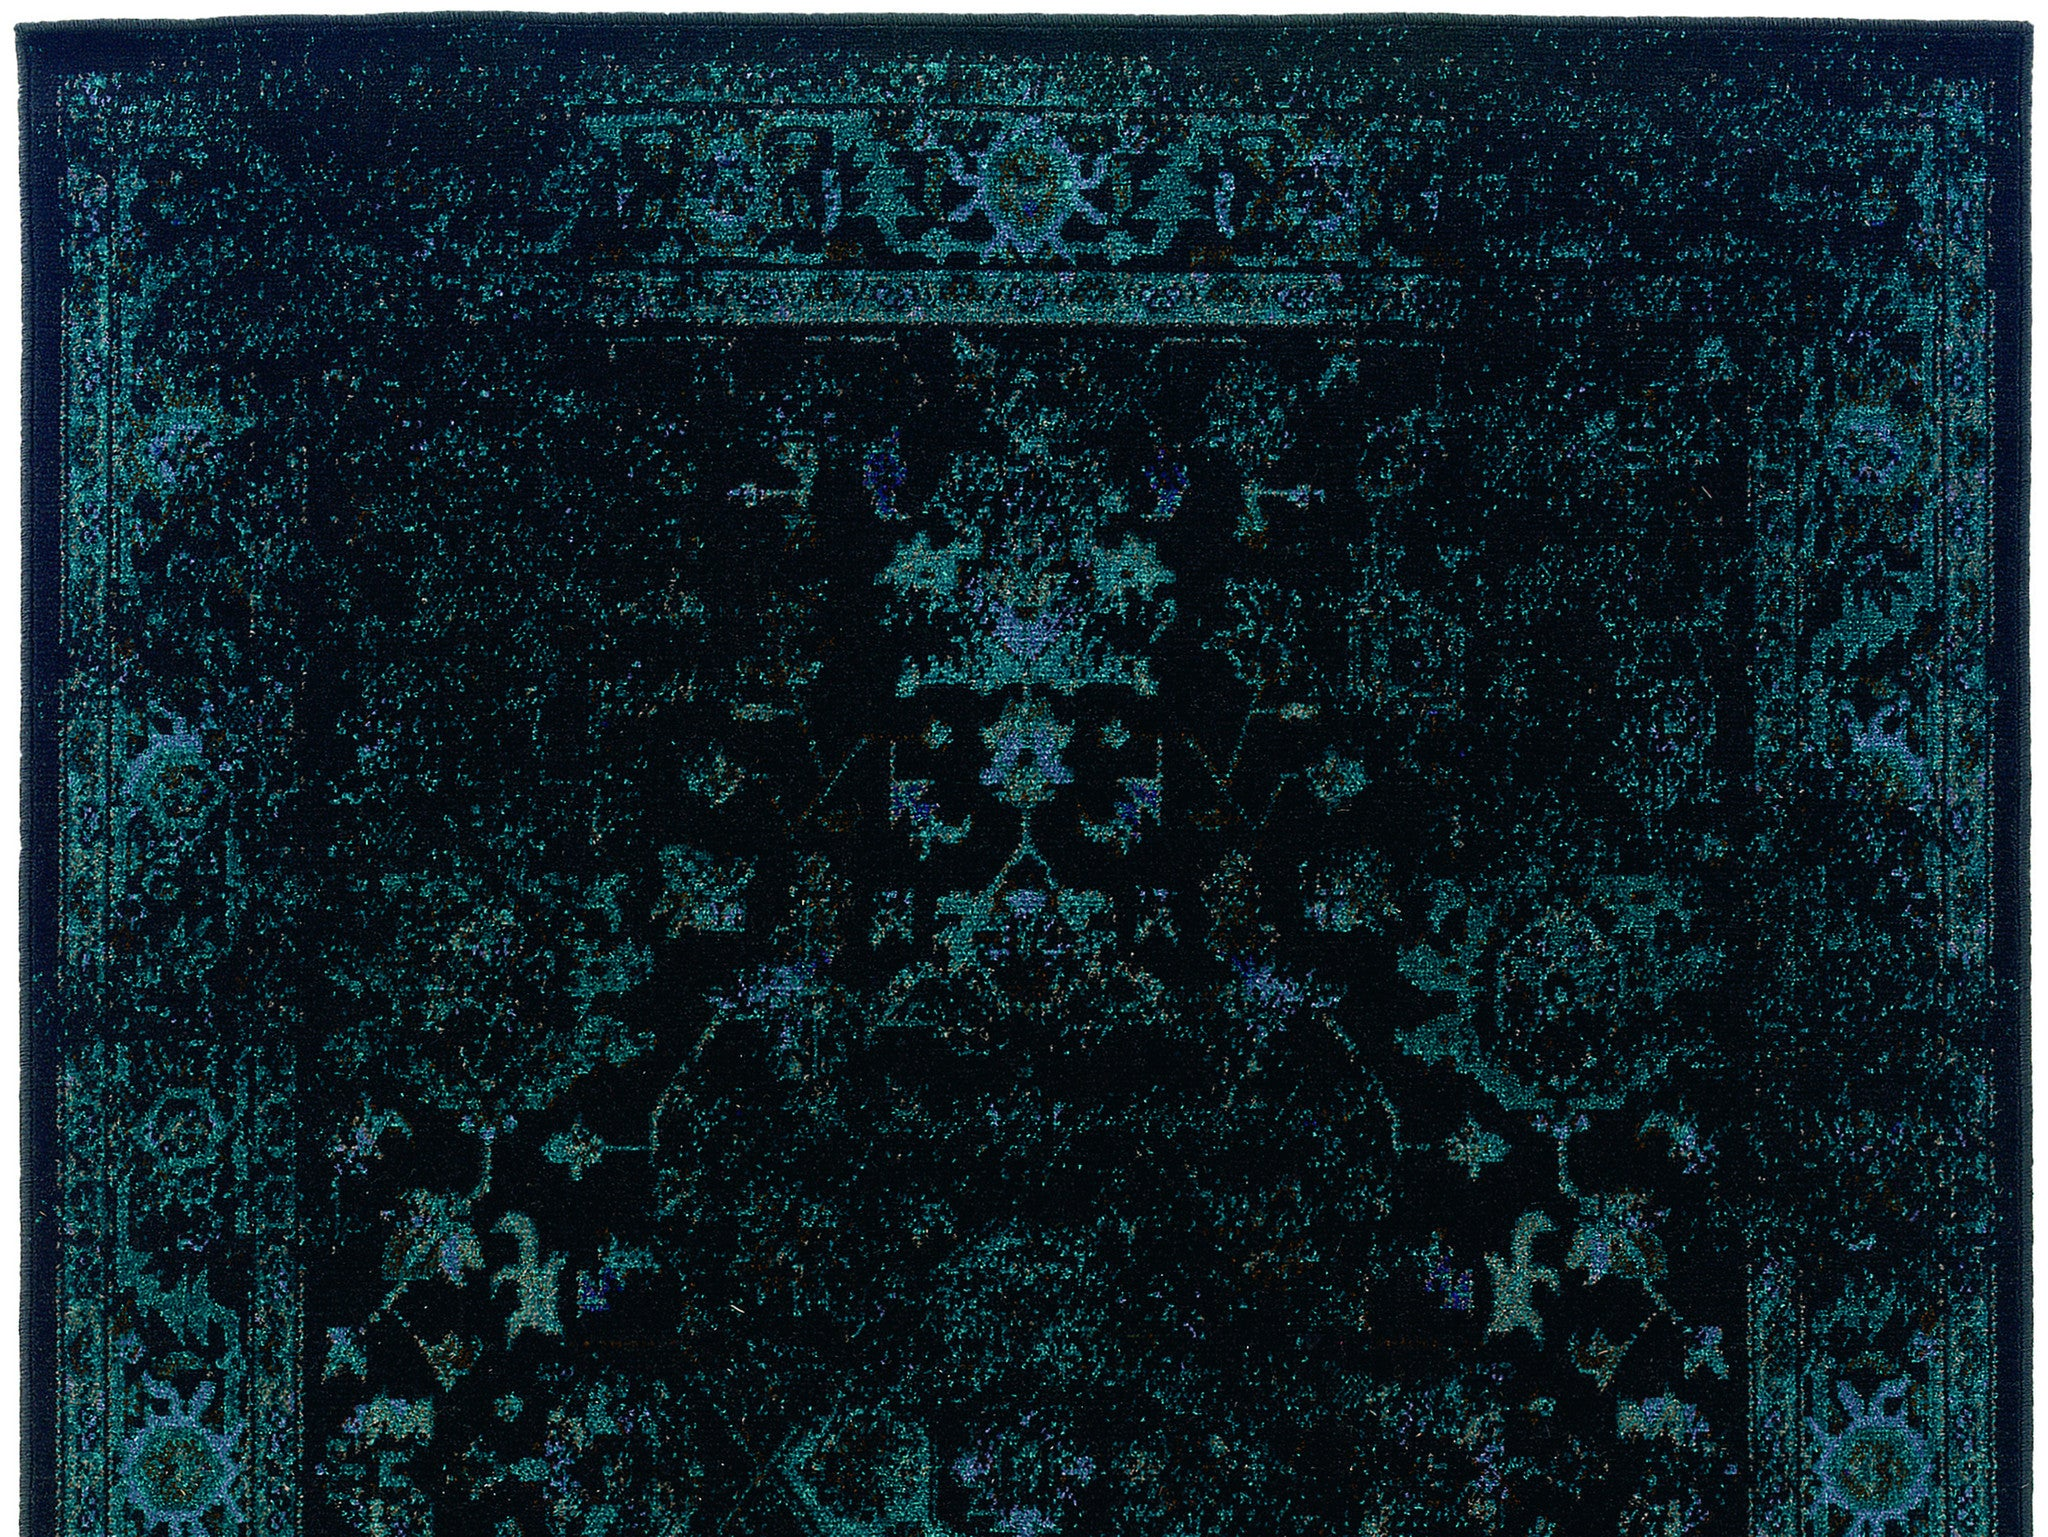 Greatest Dark Teal Blue and Black Worn Overdyed Rug - Woodwaves KS32